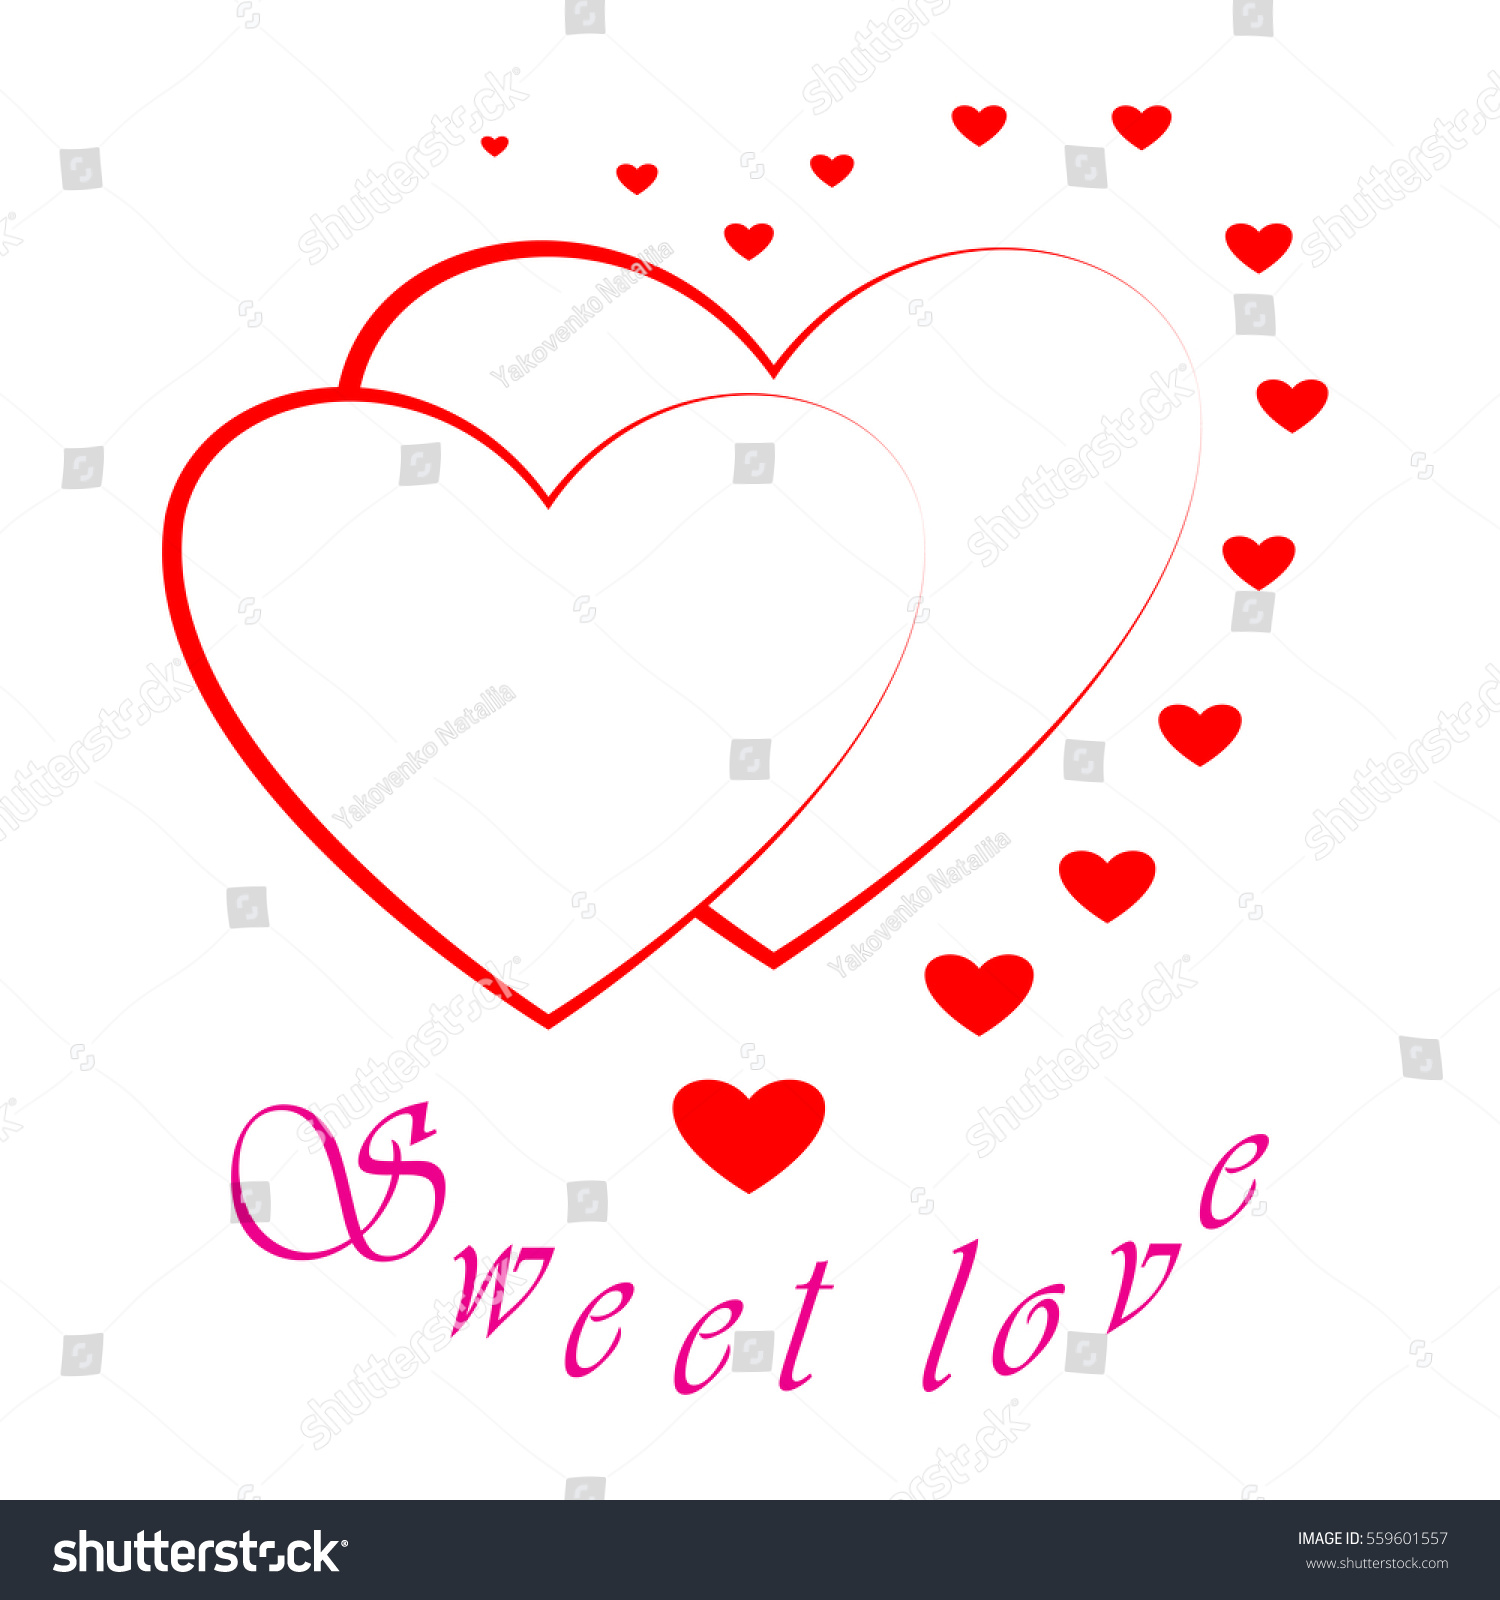 Superb Heart Two Card Red Sign Quote Stock Illustration 559601557   Shutterstock